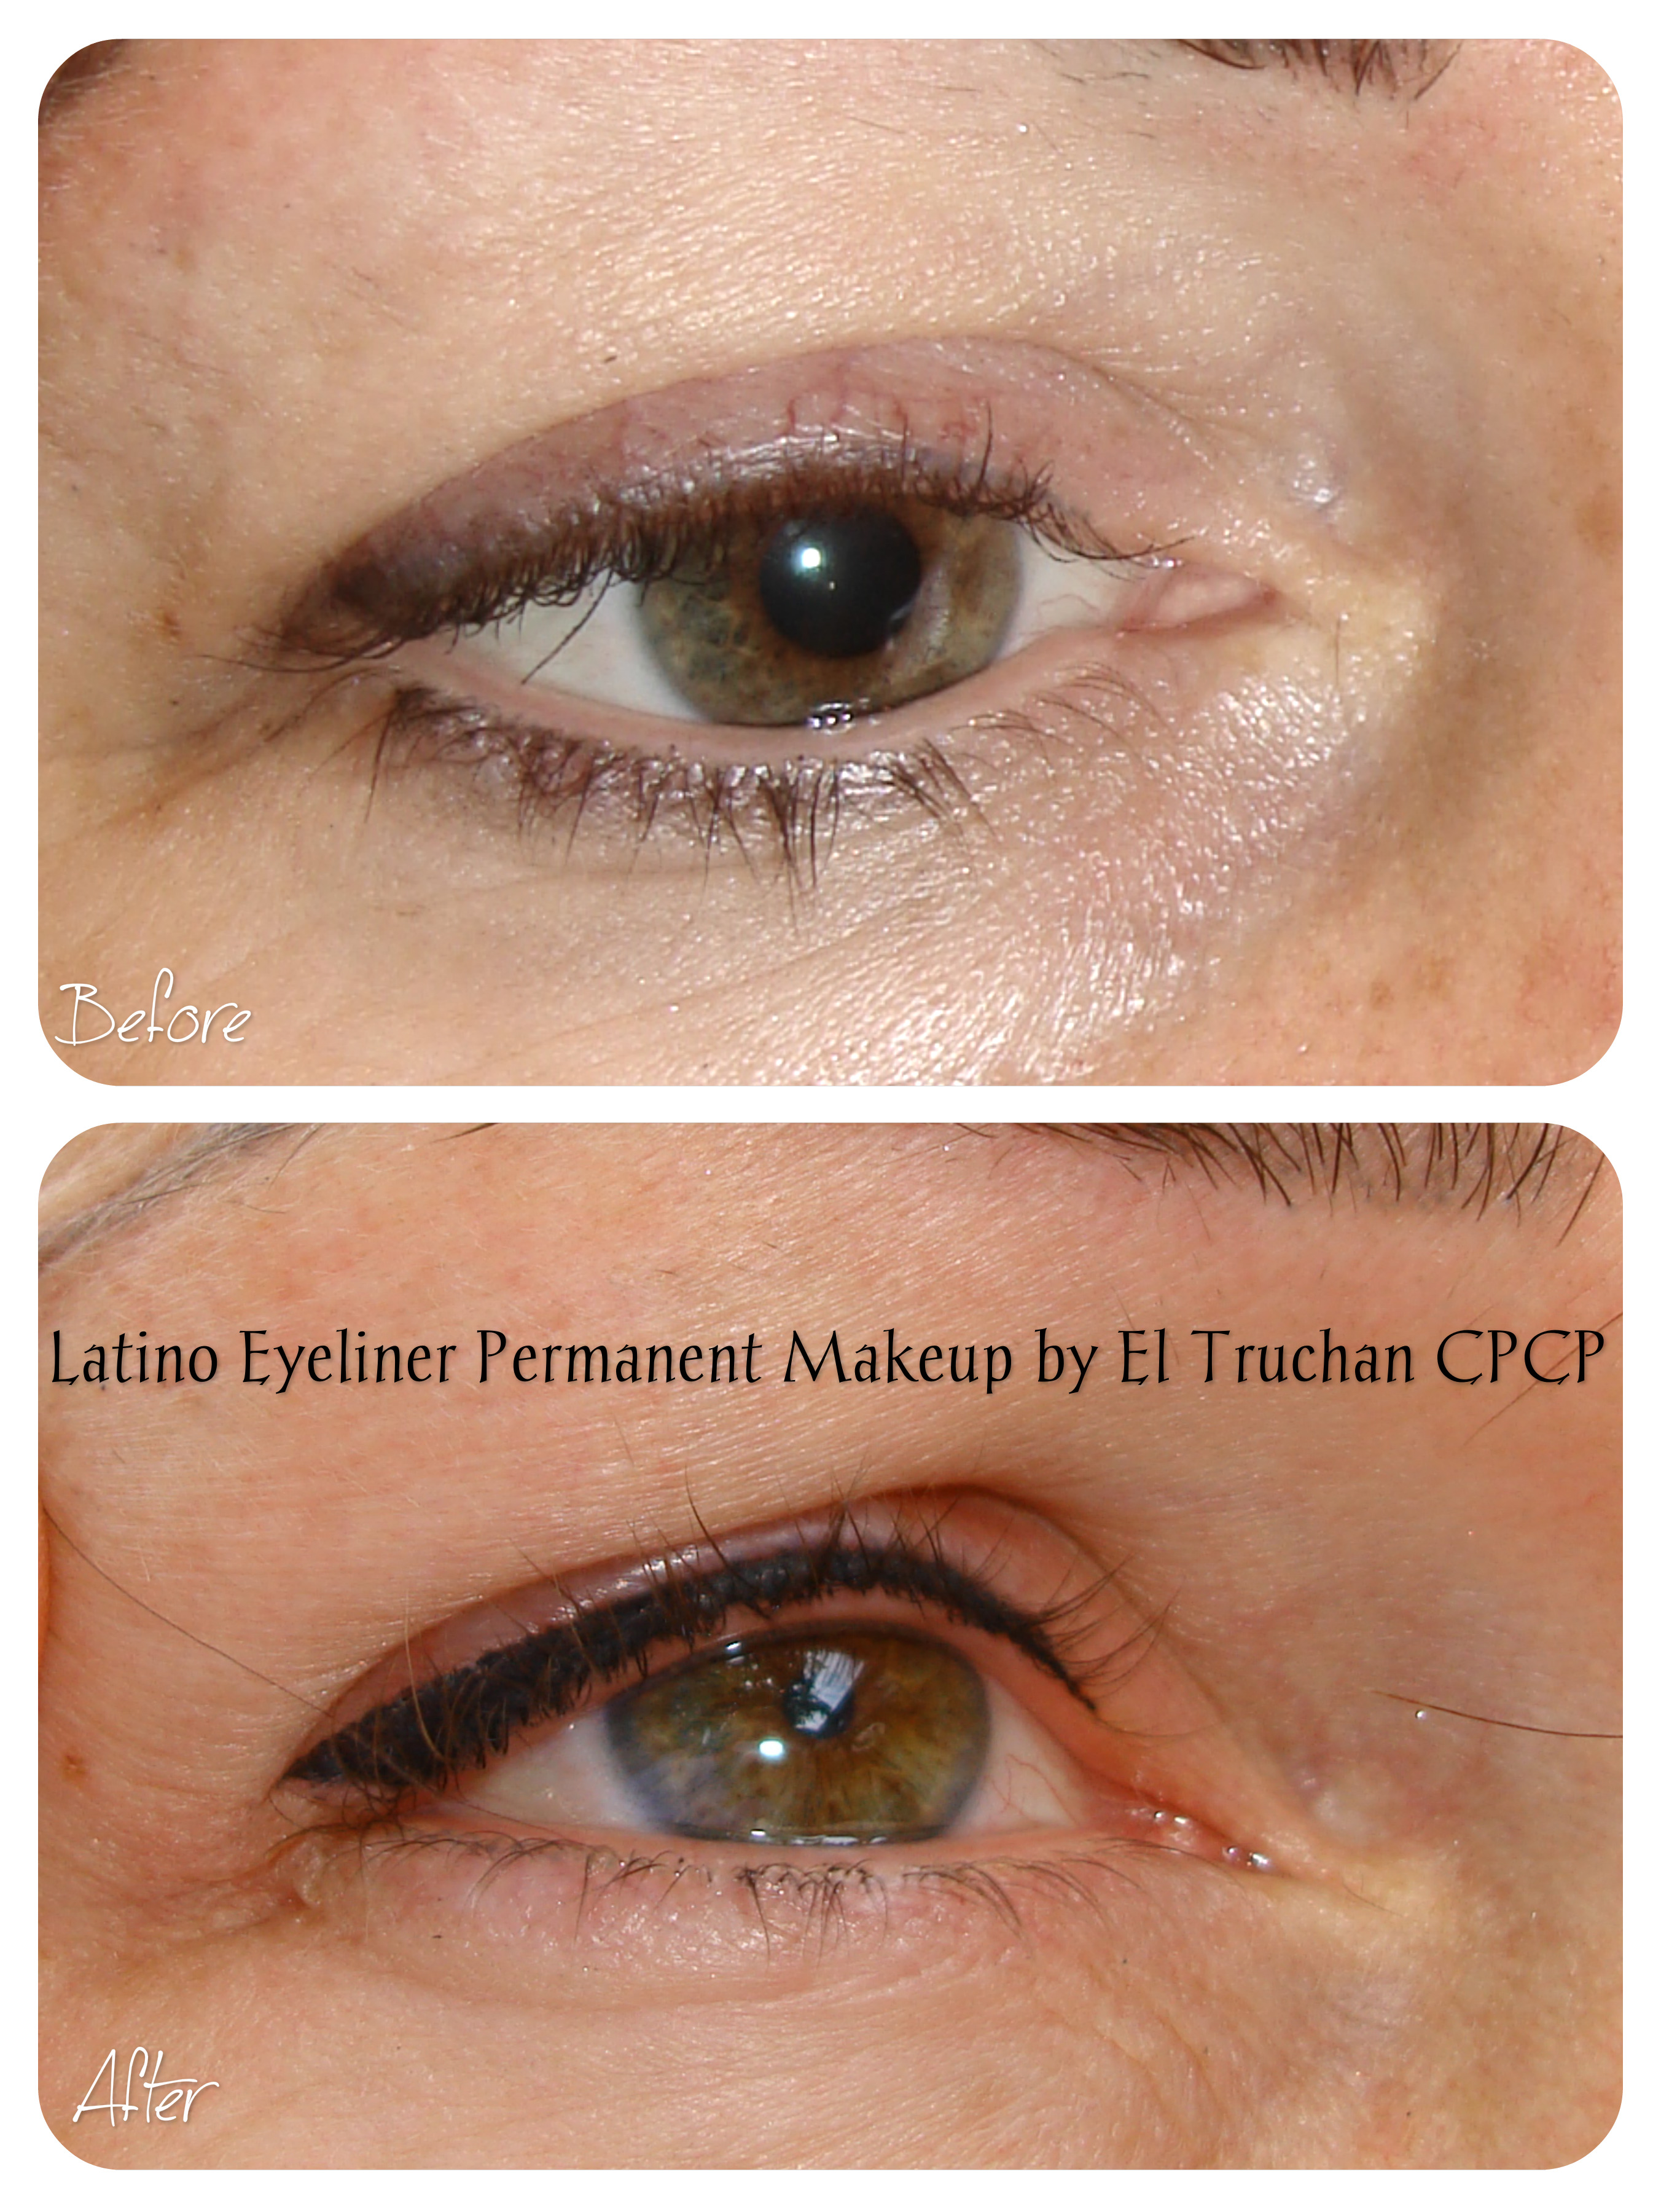 Latino Eyeliner Permanent makeup by El Truchan CPCP.1